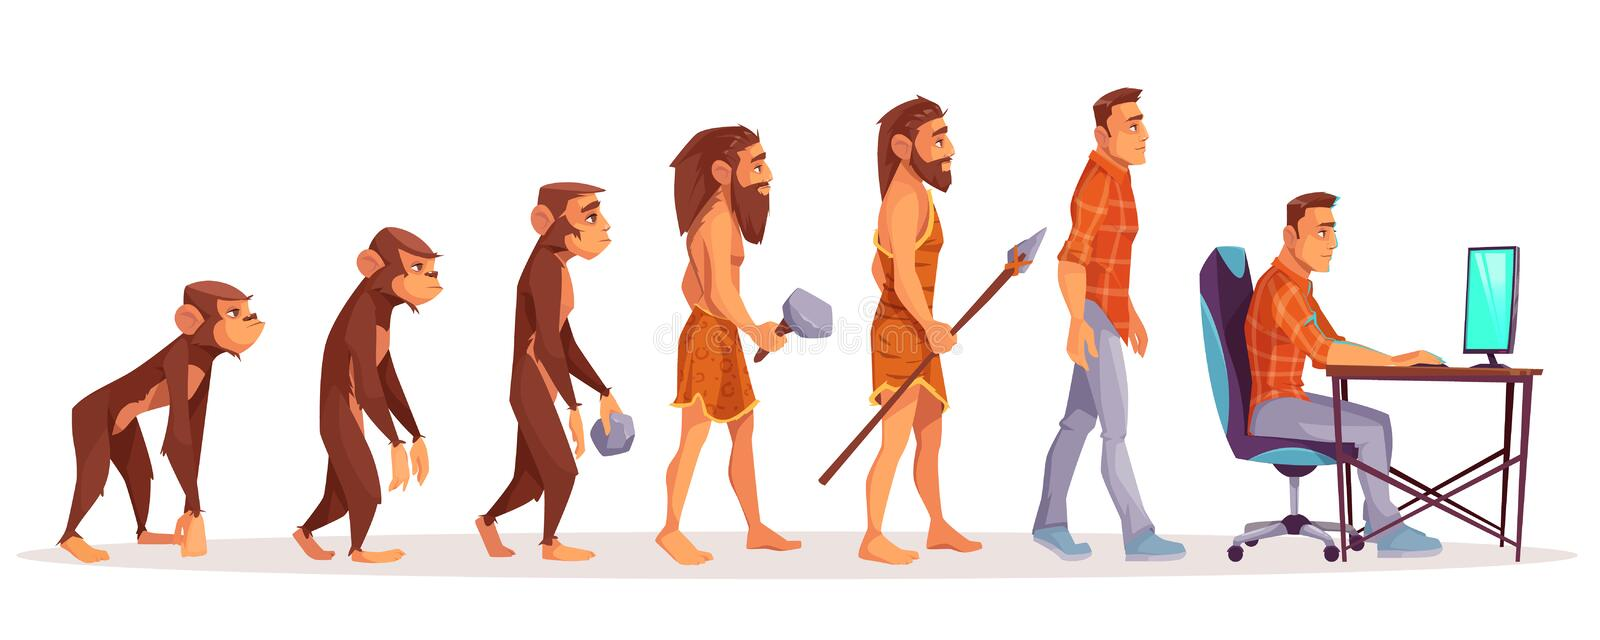 Human evolution from ape to man computer user stock illustration